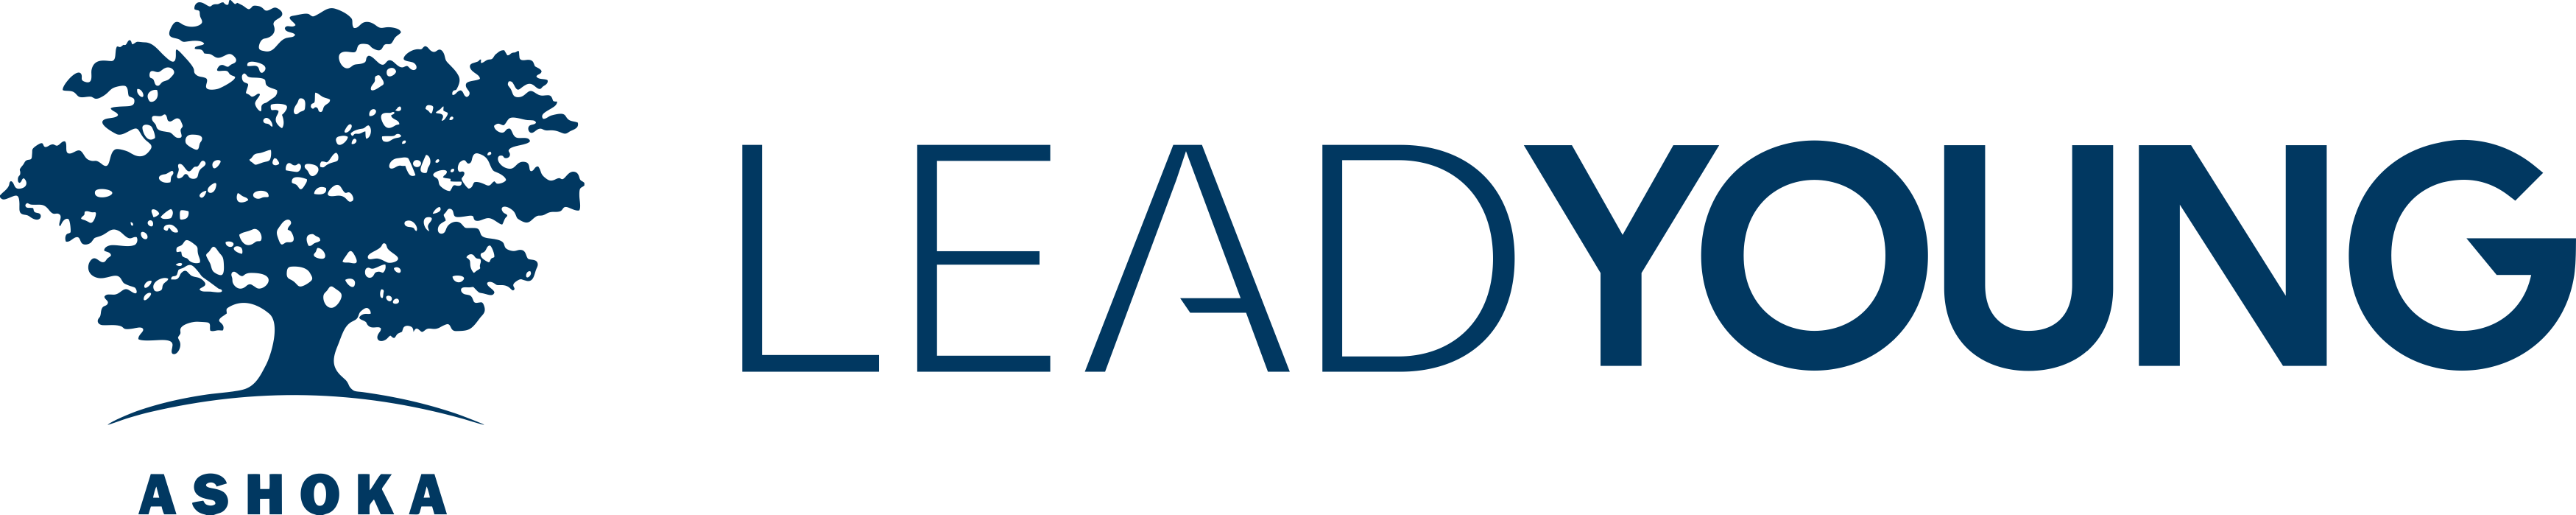 leadyoung logo